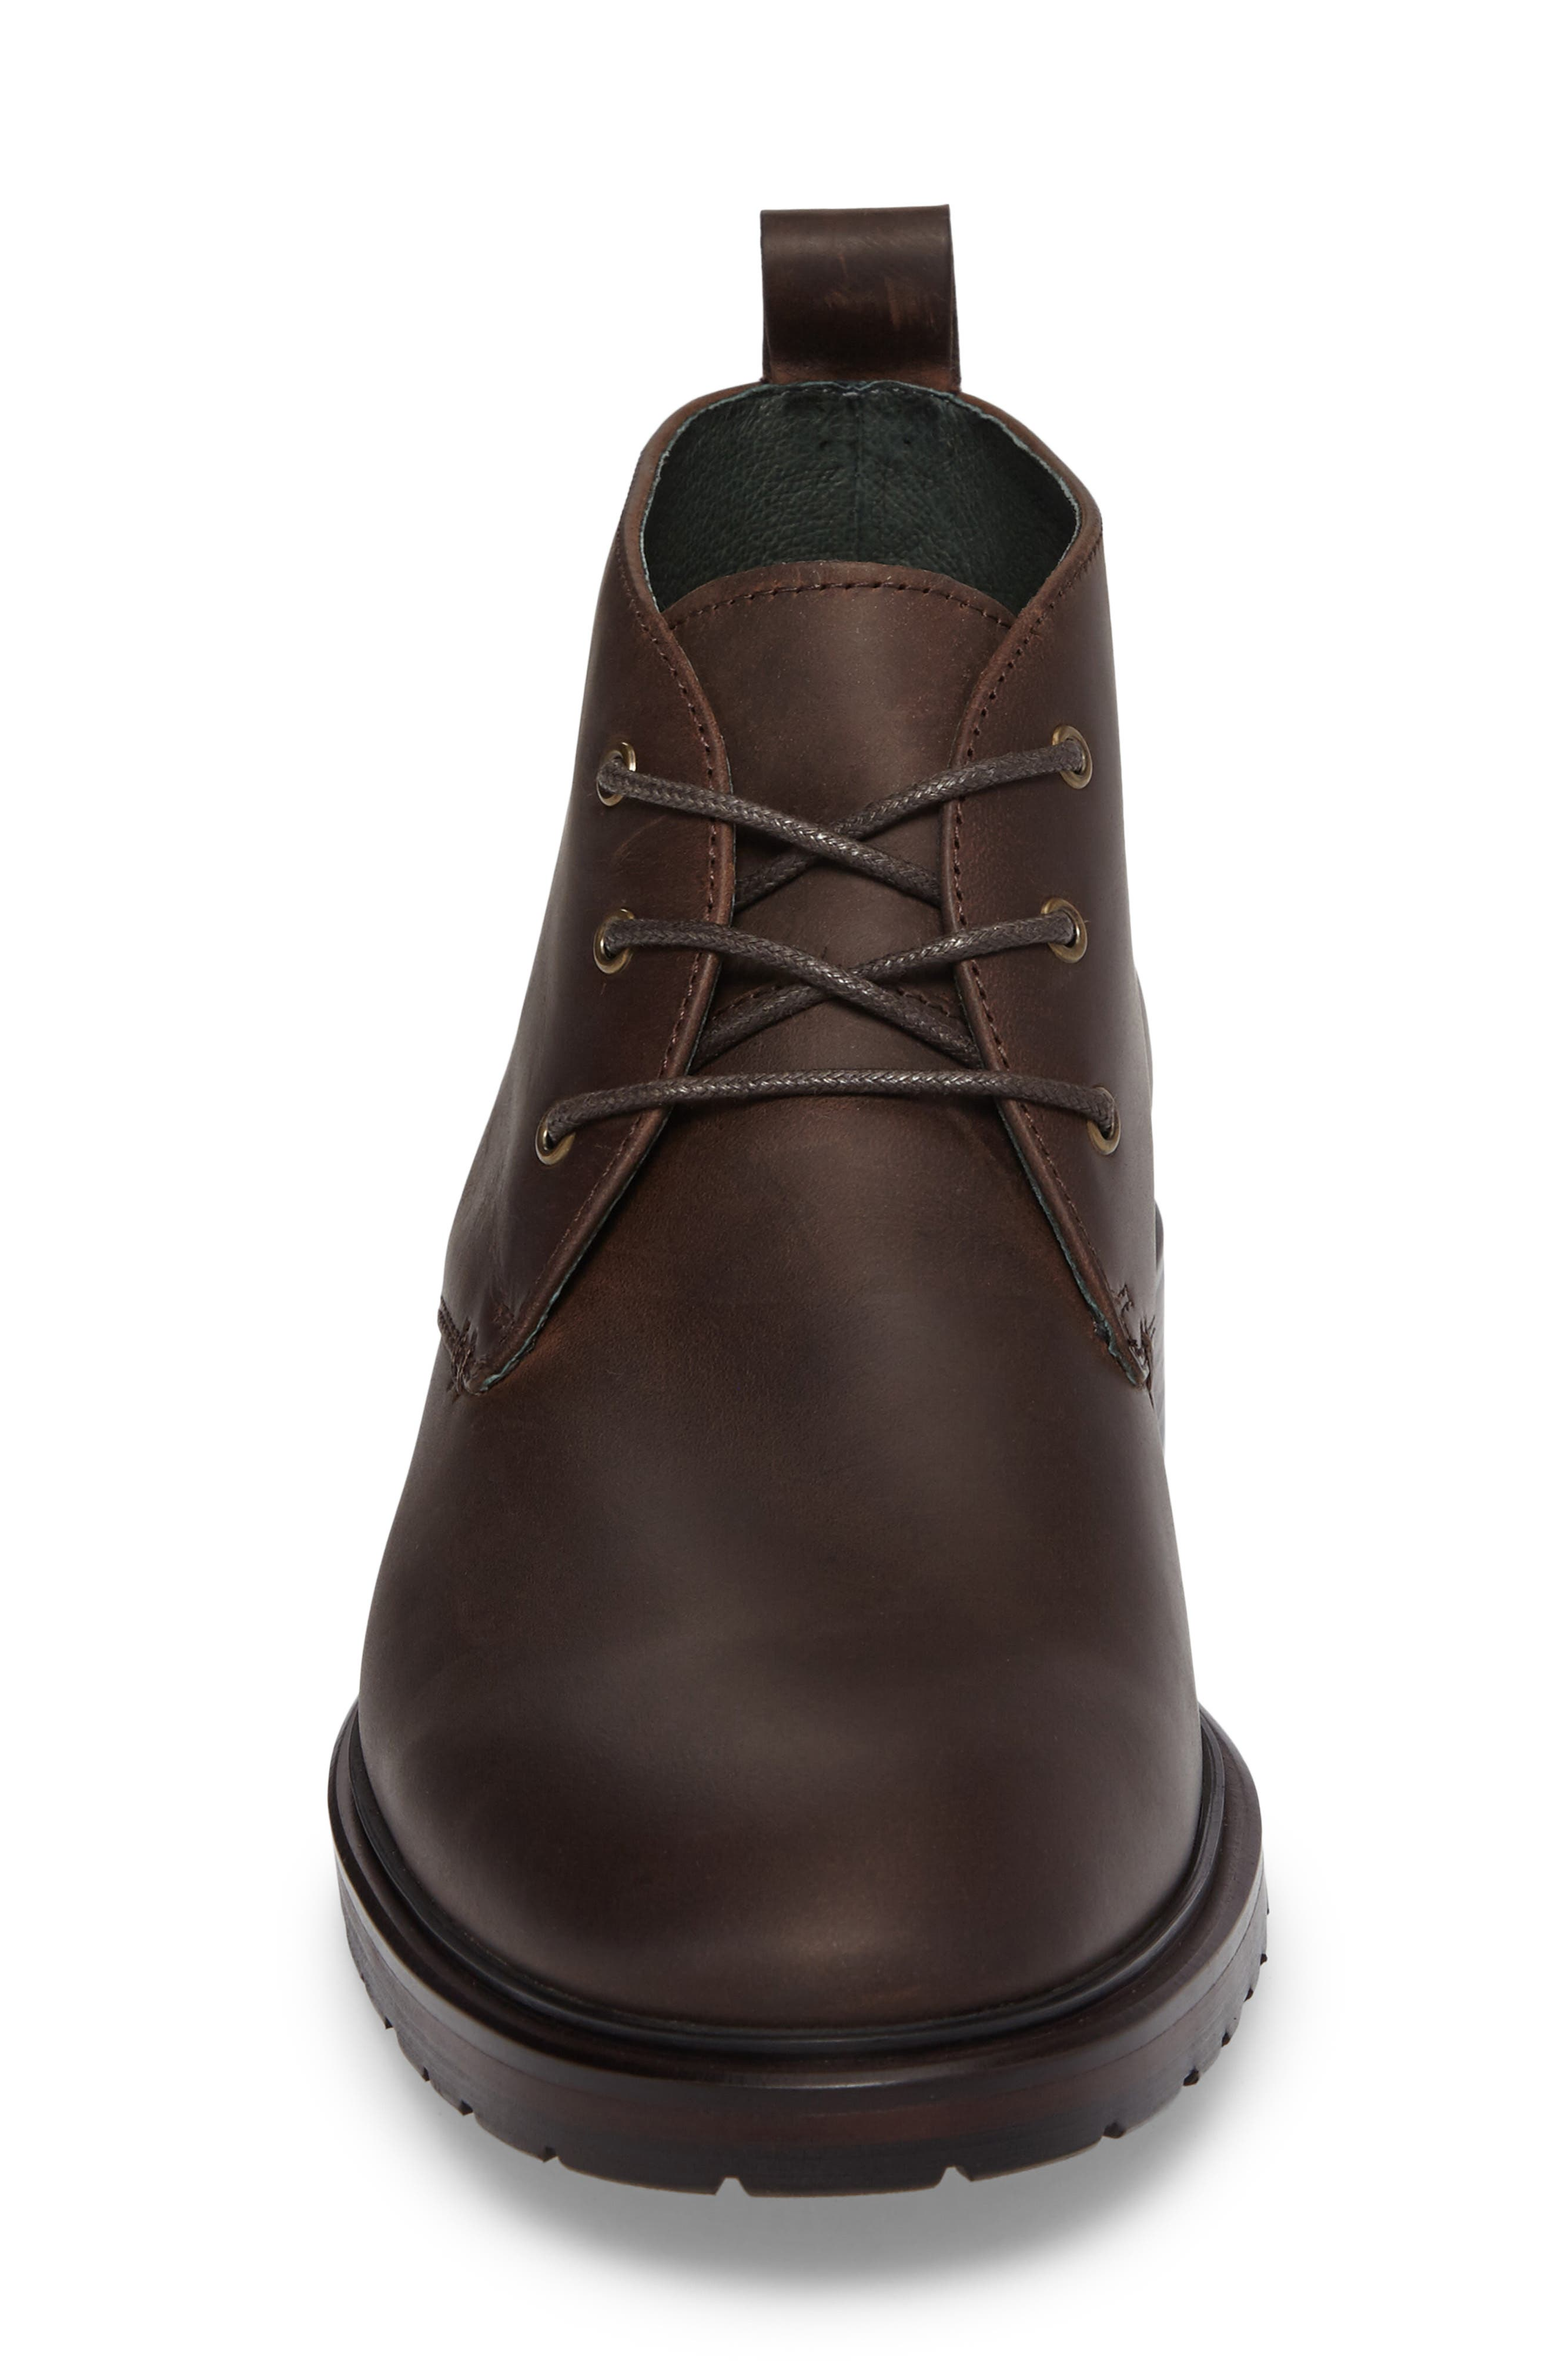 Myles Chukka Boot,                             Alternate thumbnail 4, color,                             Dark Brown Leather